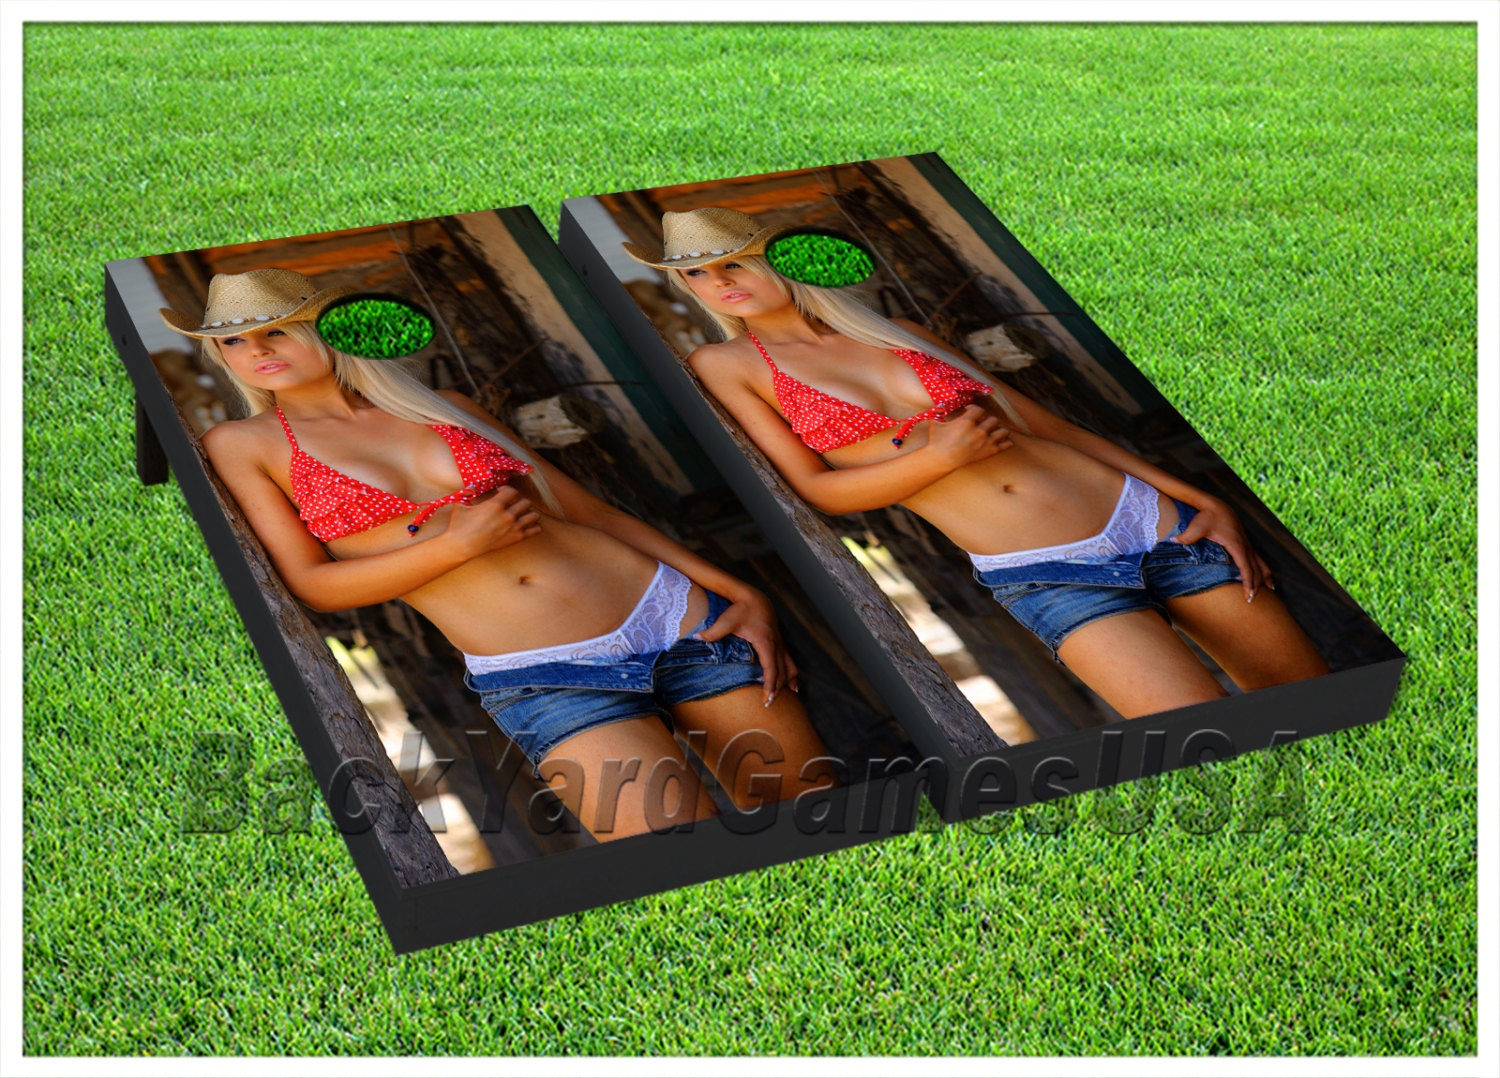 Vinyl Wraps Cornhole Boards Decals Sexy Cowgirl Lady Bag Toss